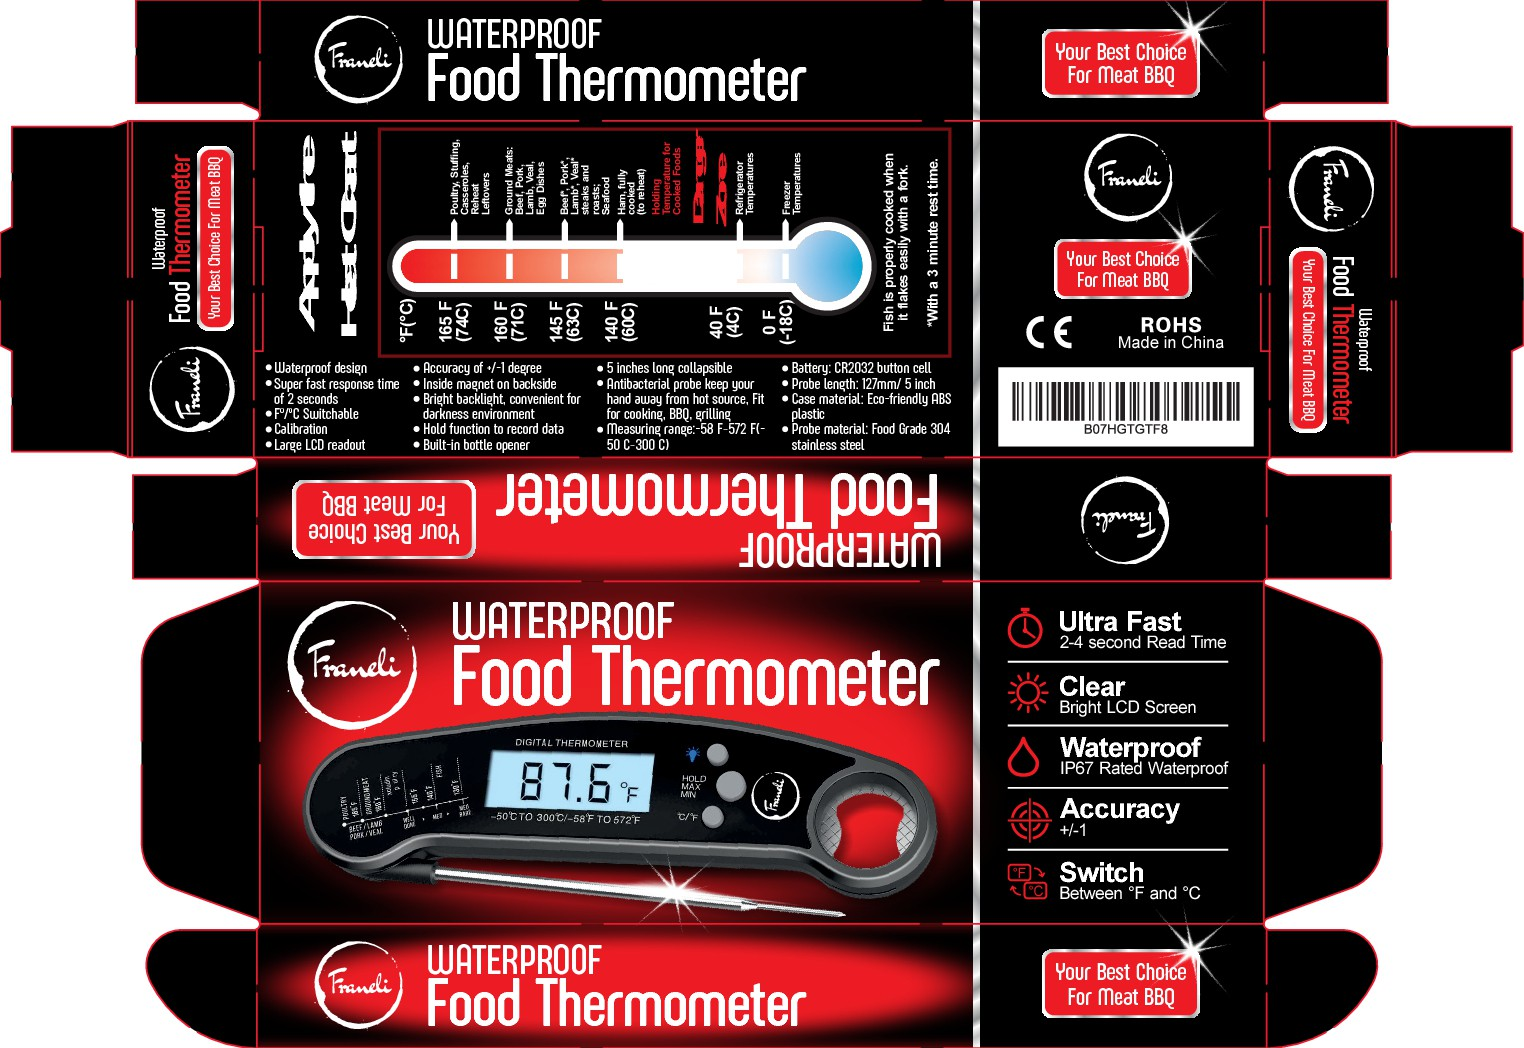 Created a Waterproof Food thermometer packaging (Link Provide for guidance)